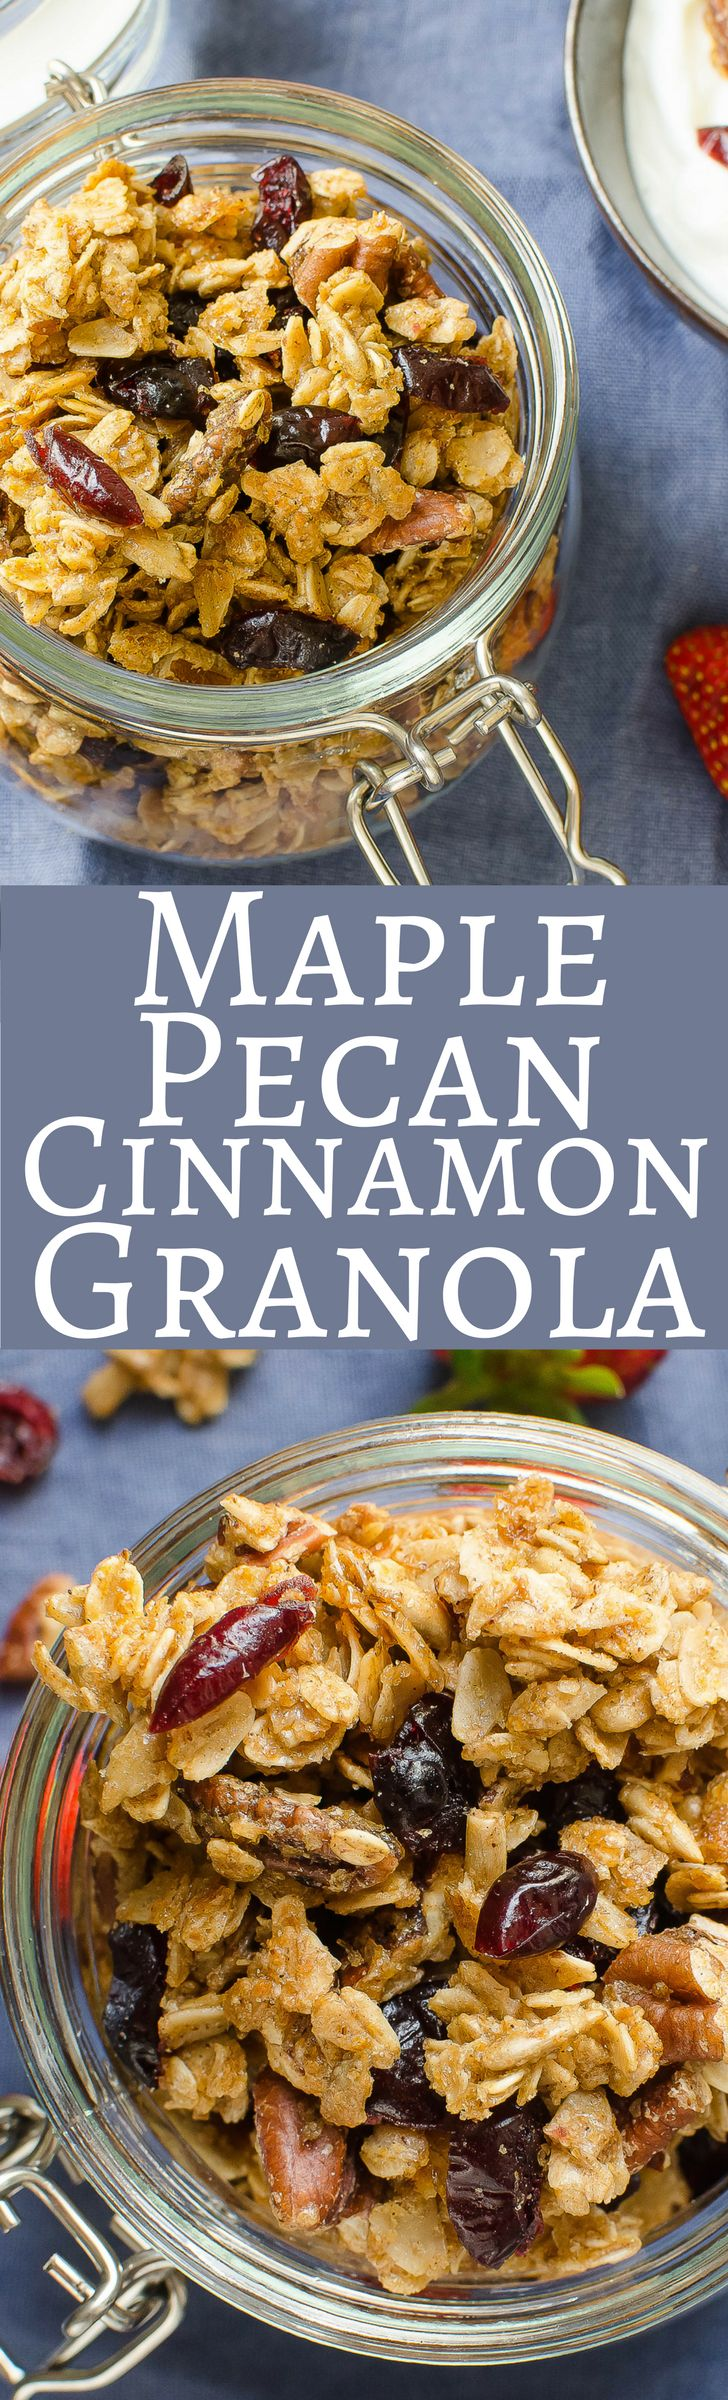 Homemade and easy to make Maple Pecan Cinnamon Granola with dried cranberries and sunflower seeds, this granola is the perfect topper for your morning yogurt or an afternoon snack!